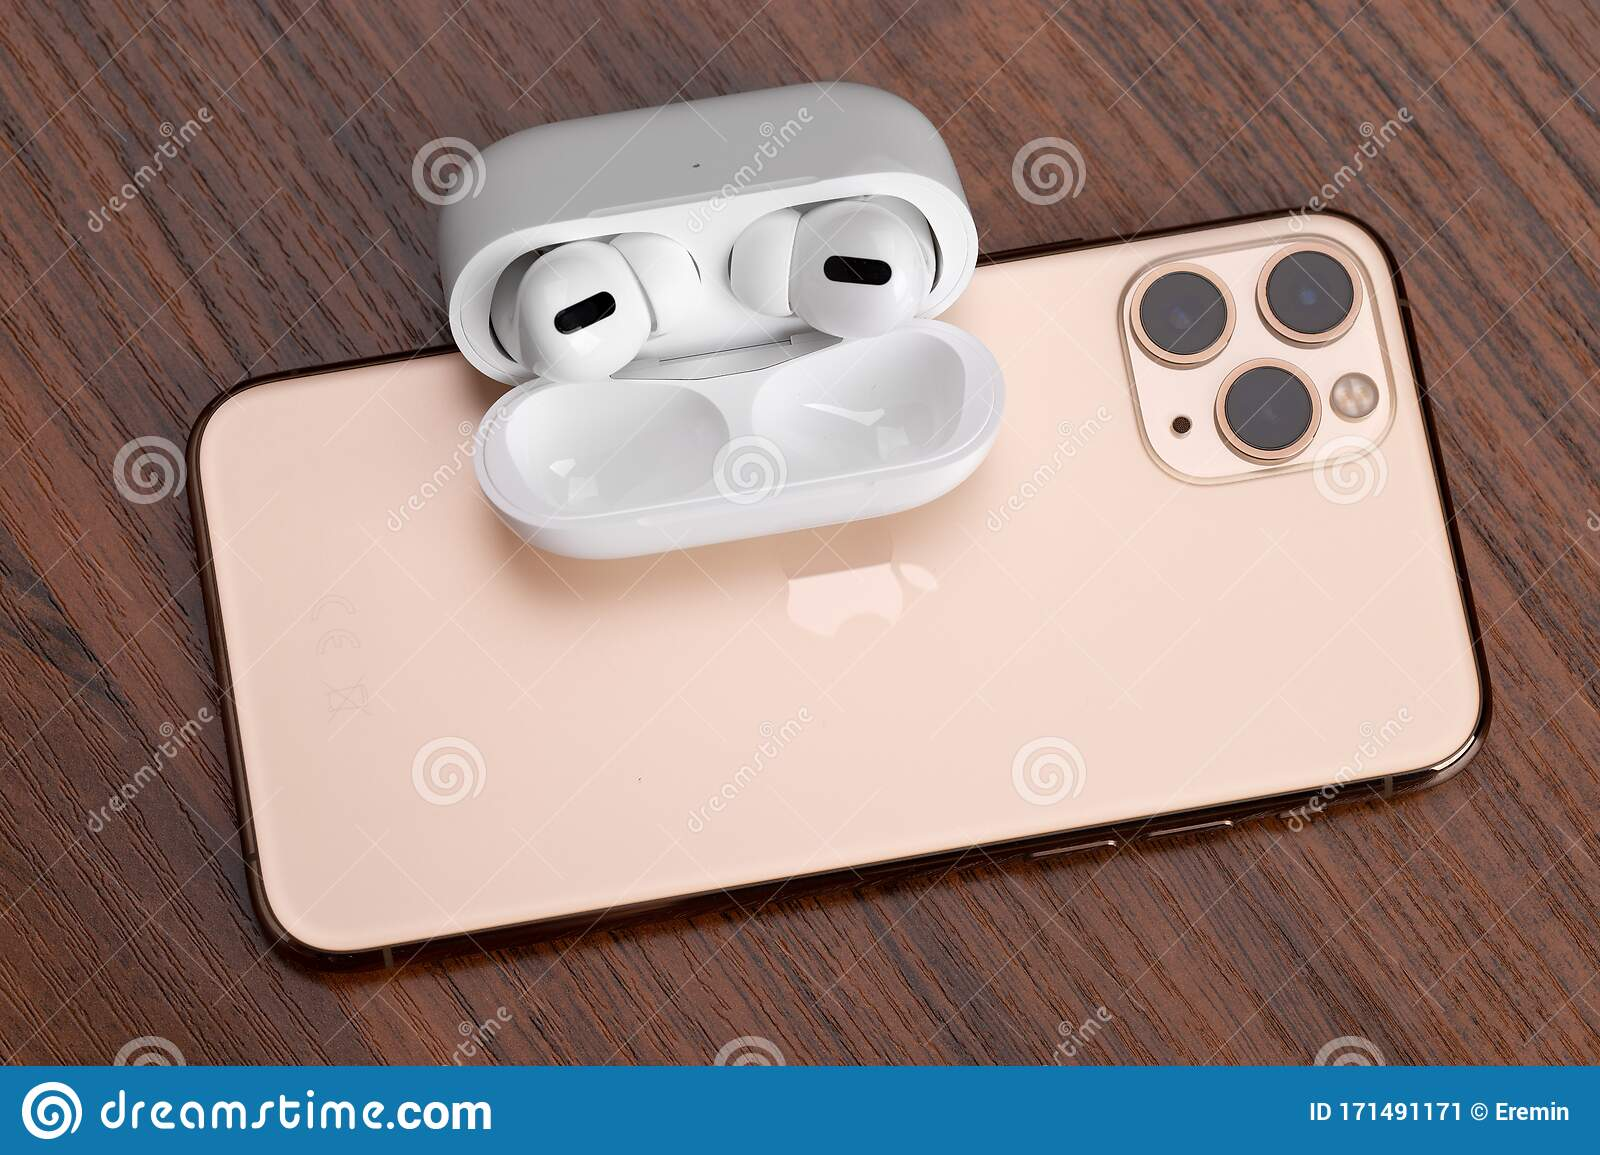 Apple Airpods Pro And Iphone 11 Pro On A Wooden Table Wireless Headphones And Smartphone Editorial Photo Image Of Display Background 171491171